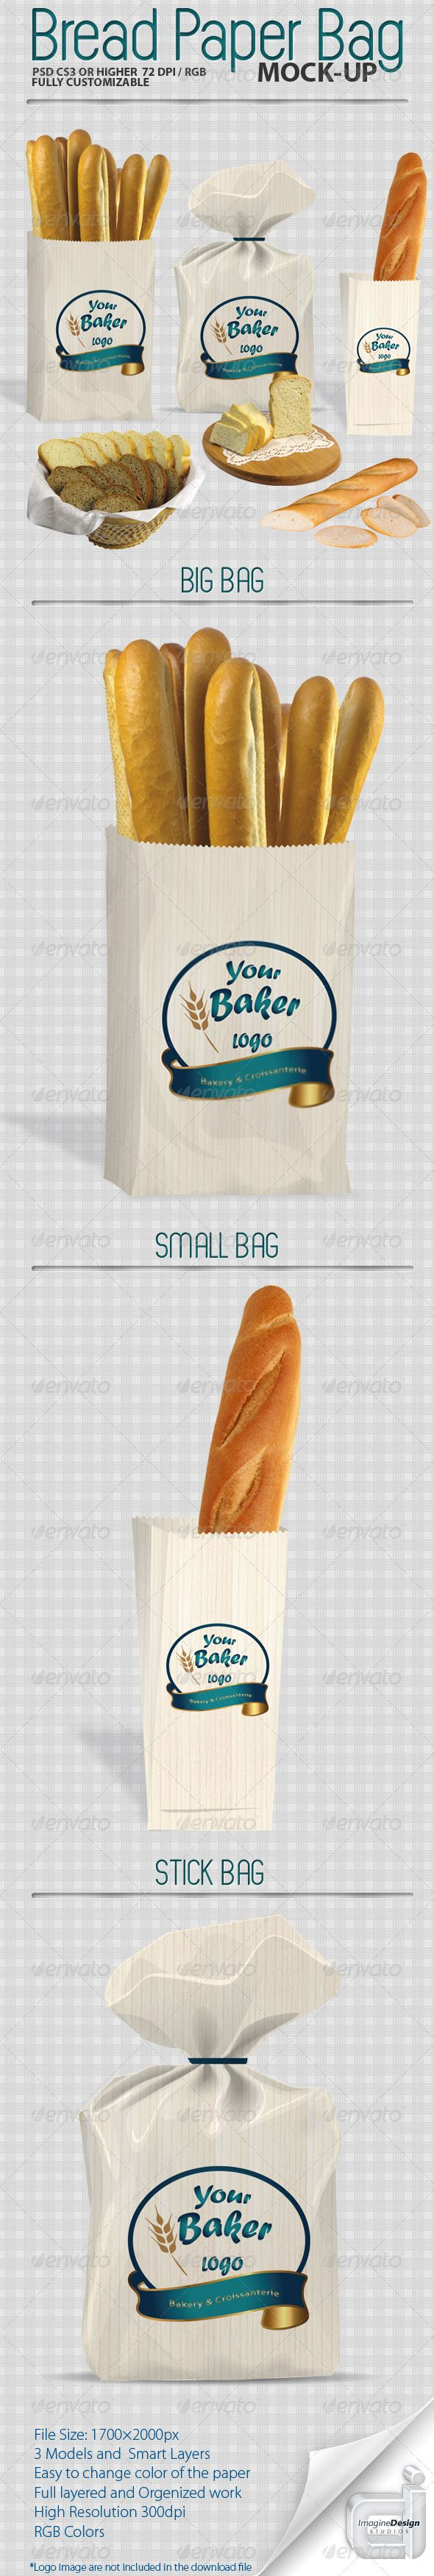 Bread Paper Bag Mockup — Photoshop PSD #mock-up #easy to use • Available here → https://graphicriver.net/item/bread-paper-bag-mockup/501897?ref=pxcr